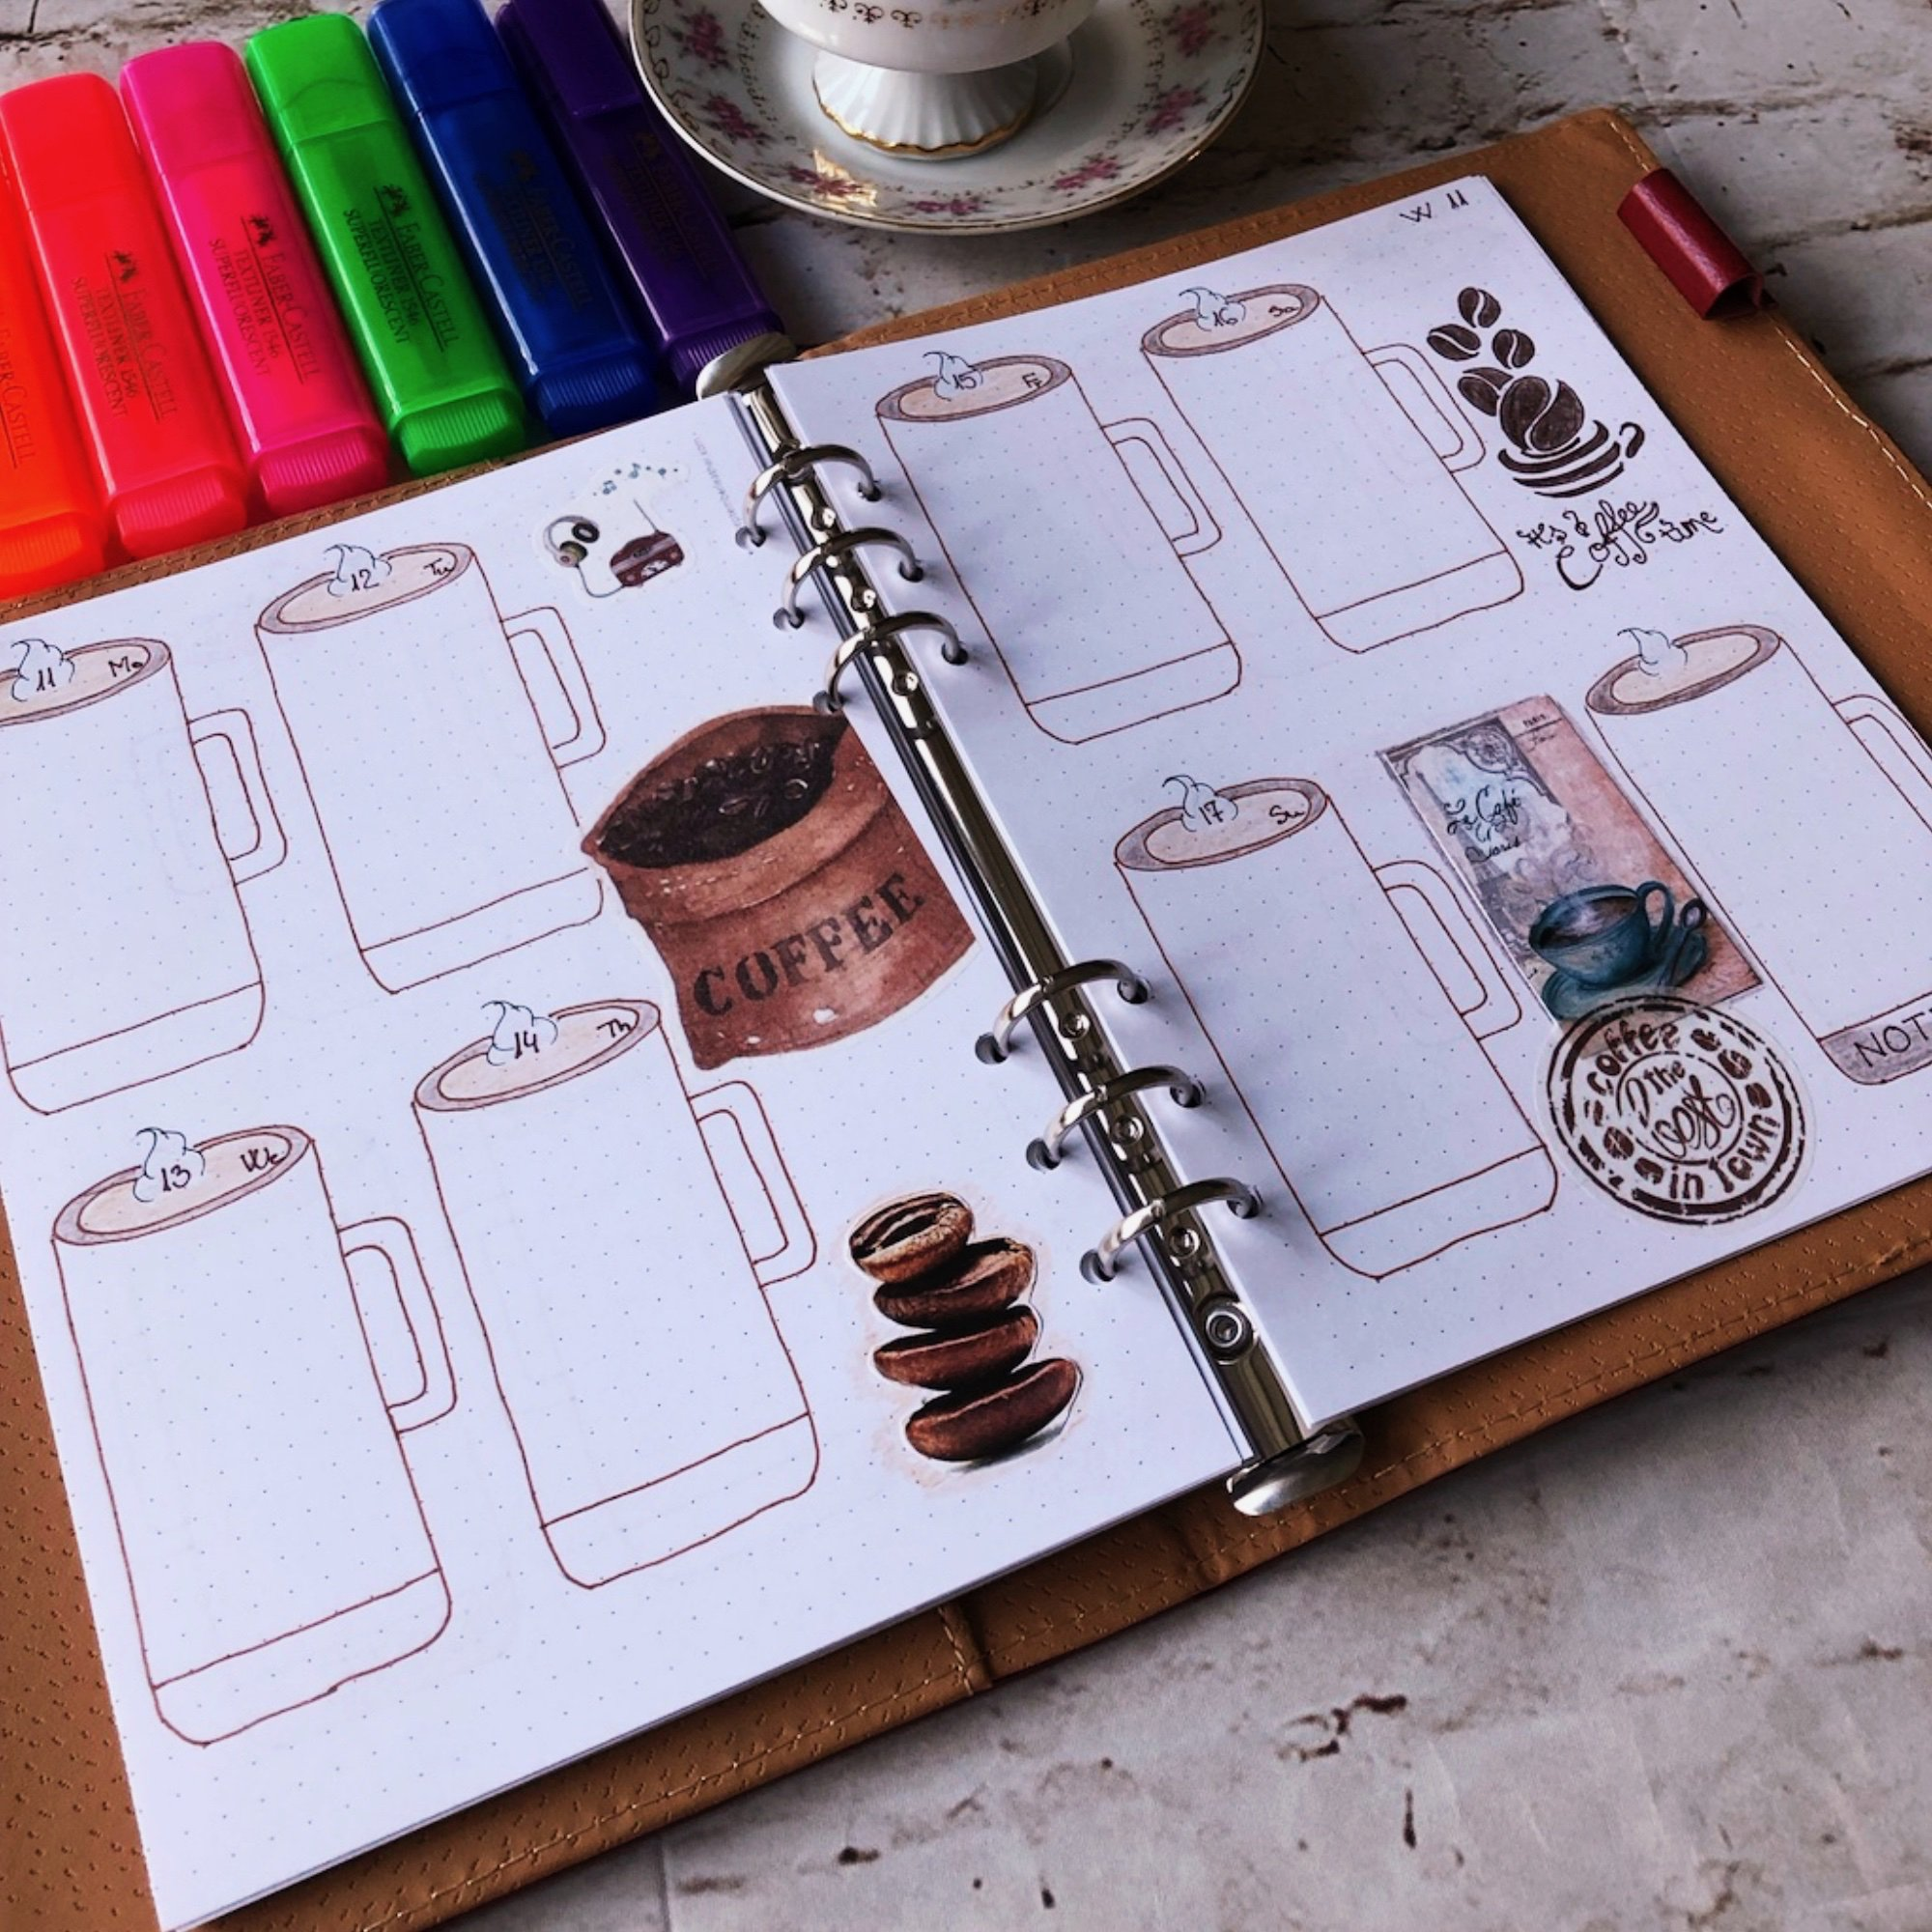 Creative journaling weekly planner – week 11 (March) - itstartswithacoffee.com #creativejournaling #weekly #weeklyplanner #March #planner #planning